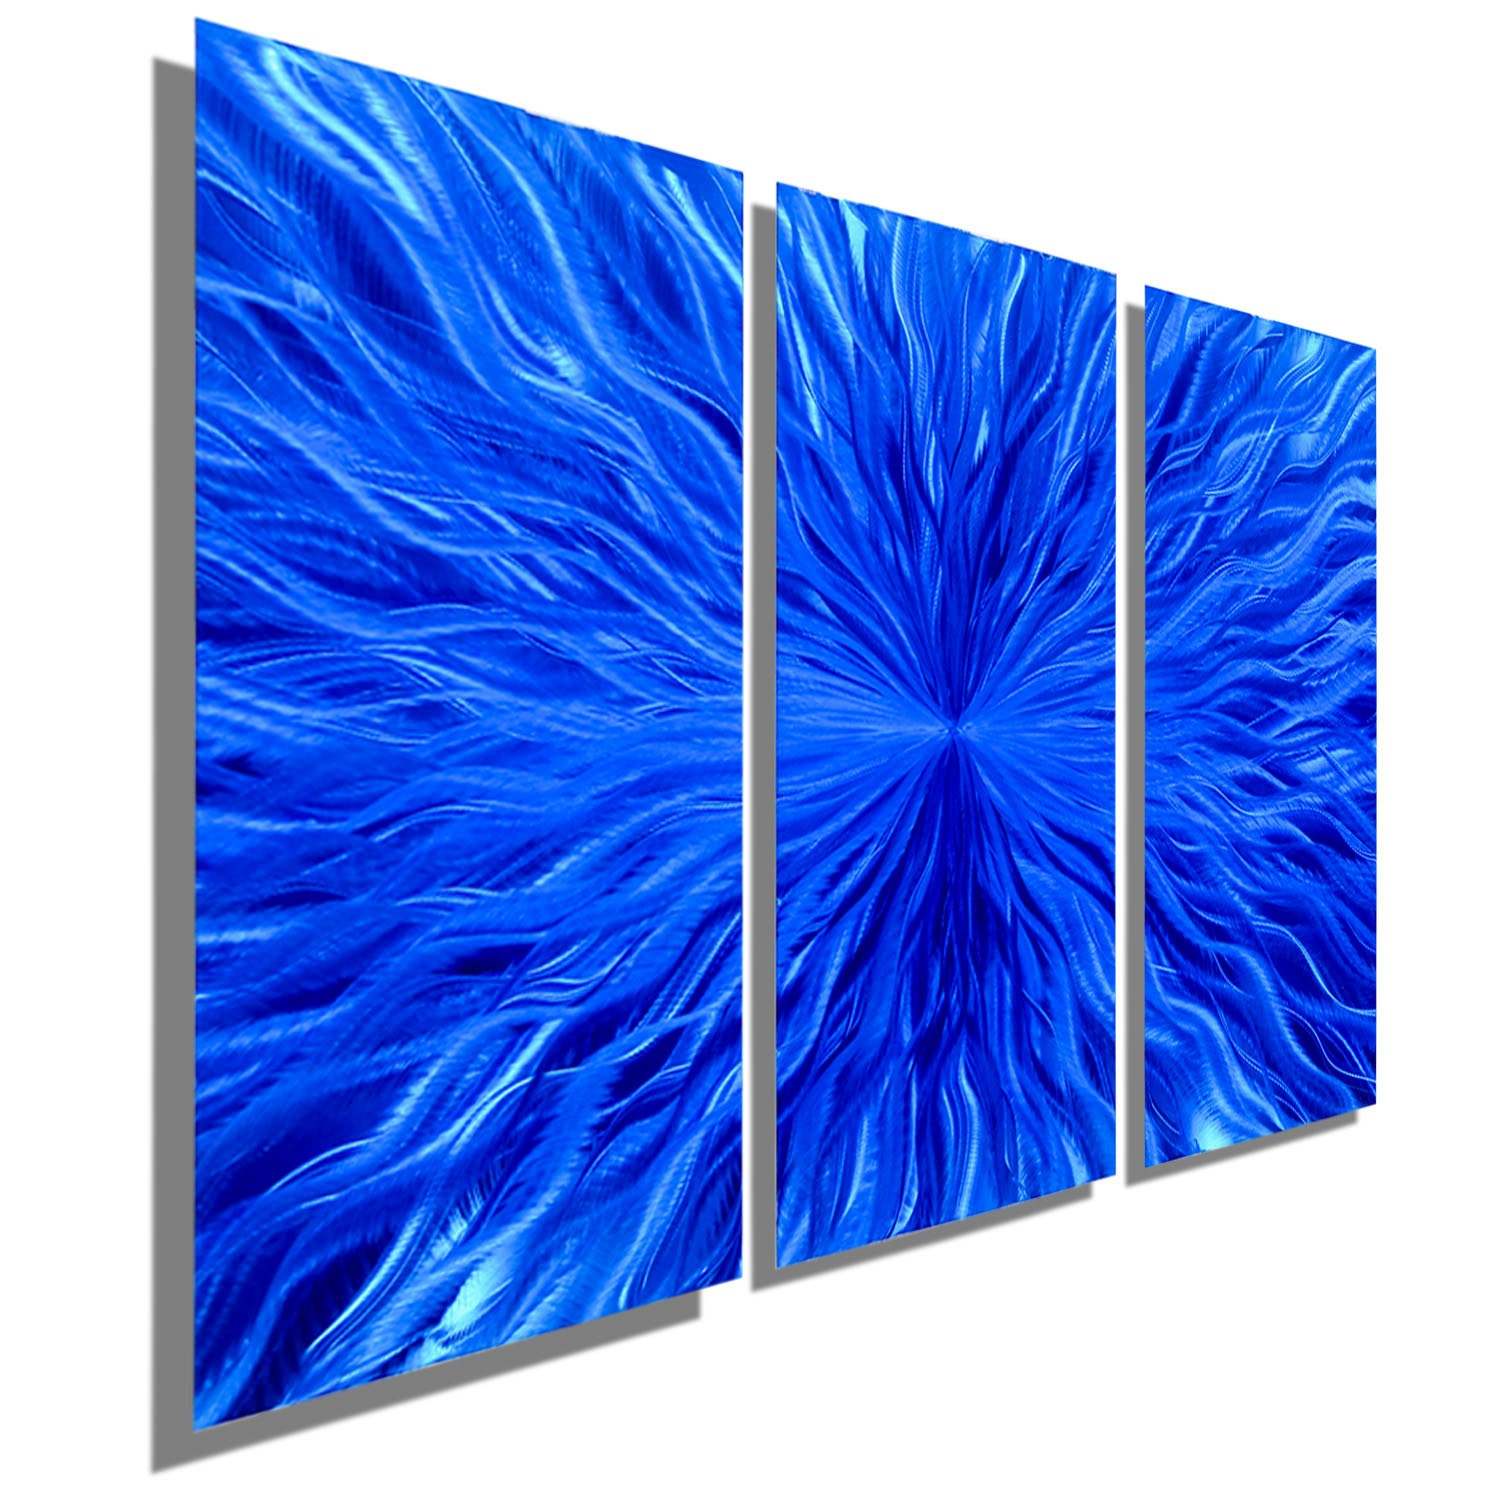 Blue Metal Wall Art Stunning Multi Panel Contemporary Metal Wall Decor In Blue Modern Design Inspiration